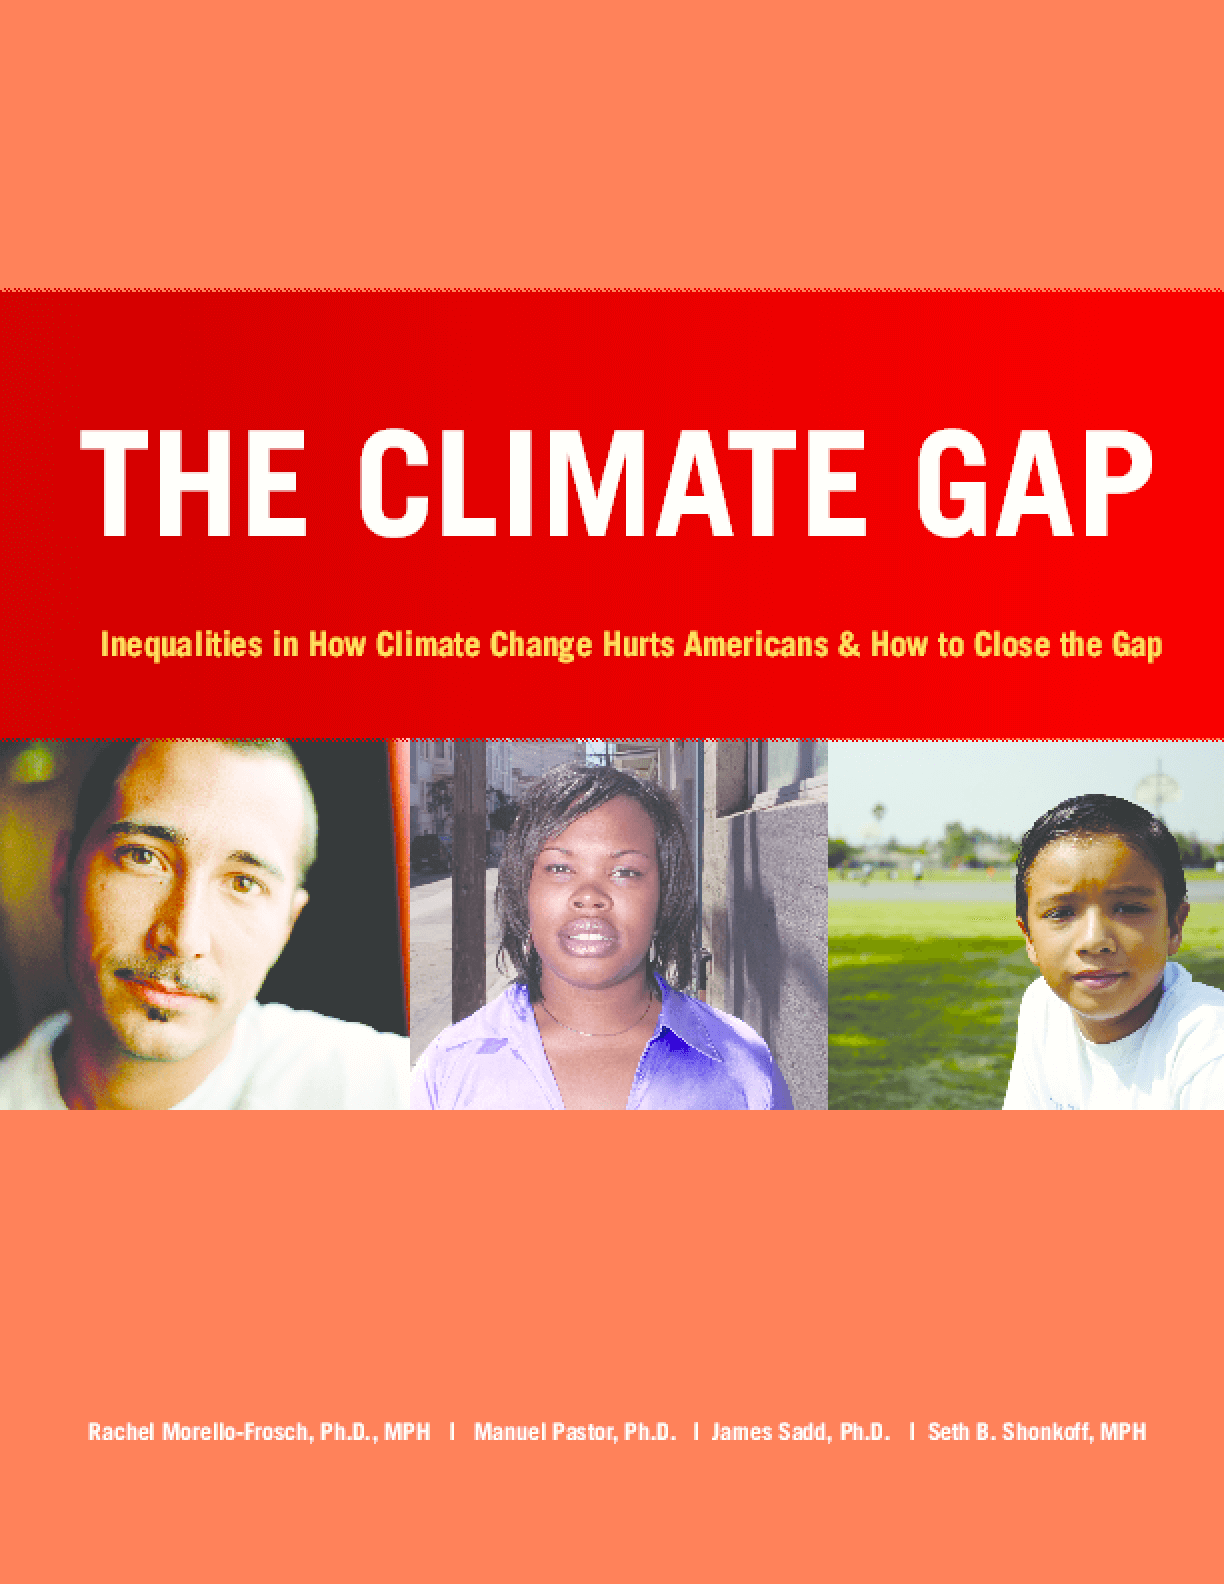 The Climate Gap: Inequalities in How Climate Change Hurts Americans & How to Close the Gap